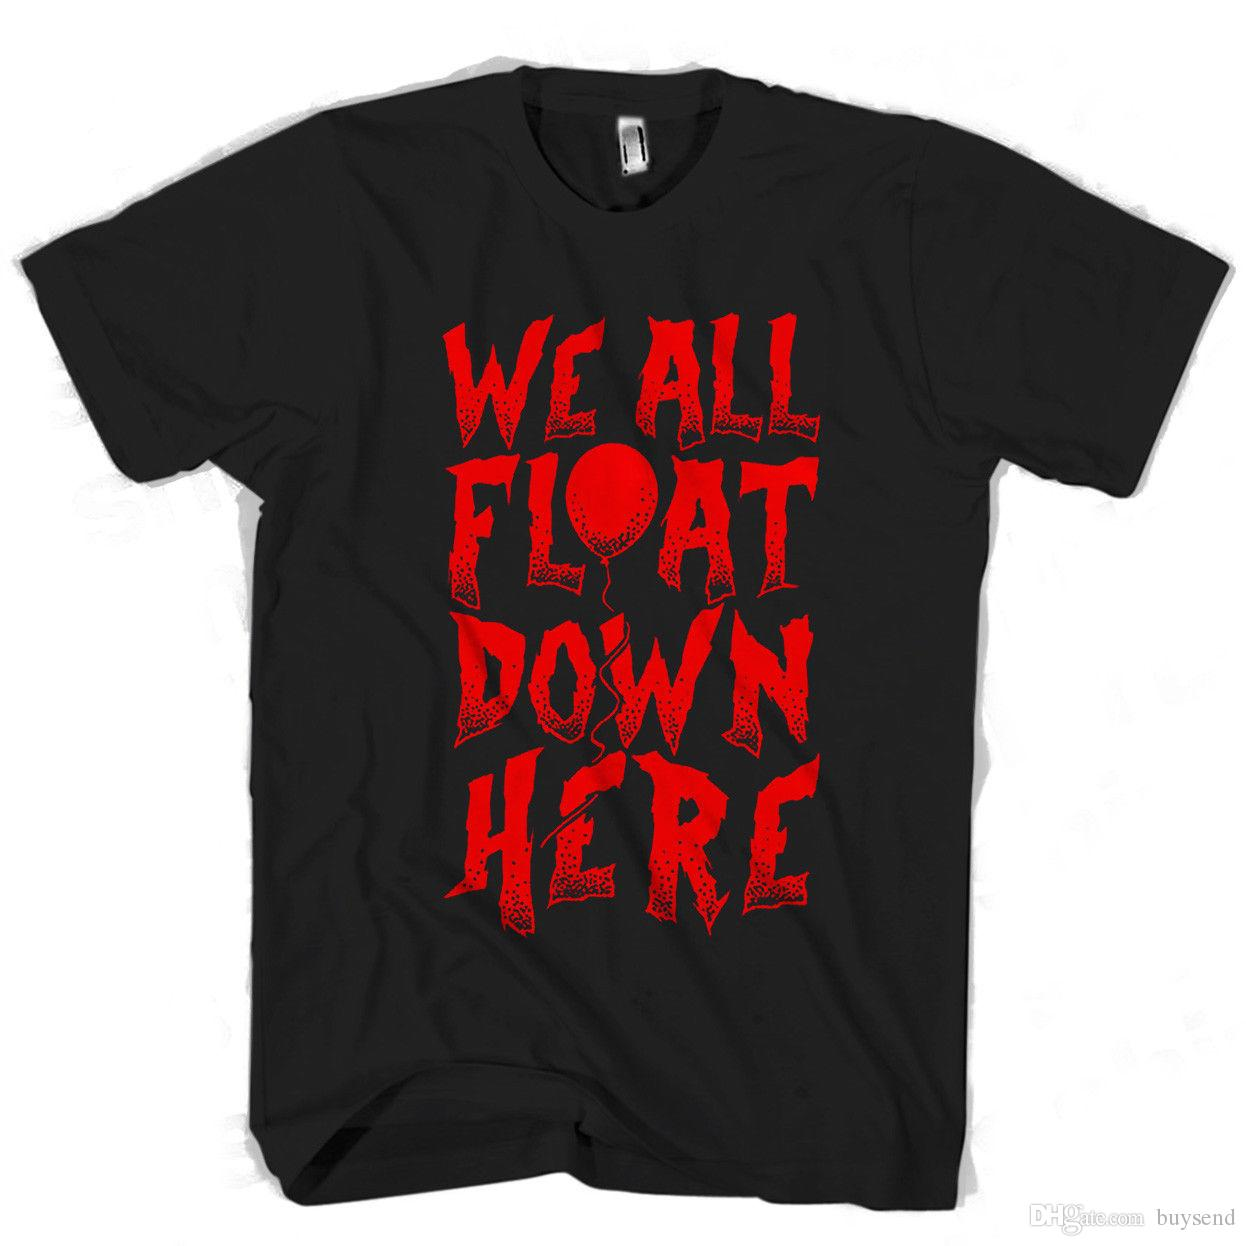 3b3958cb8624 It Stephen Kings We All Float Down Here Men'S / Women'S T Shirt Printed T  Shirt Funny T Shirts For Guys From Buysend, $10.03| DHgate.Com